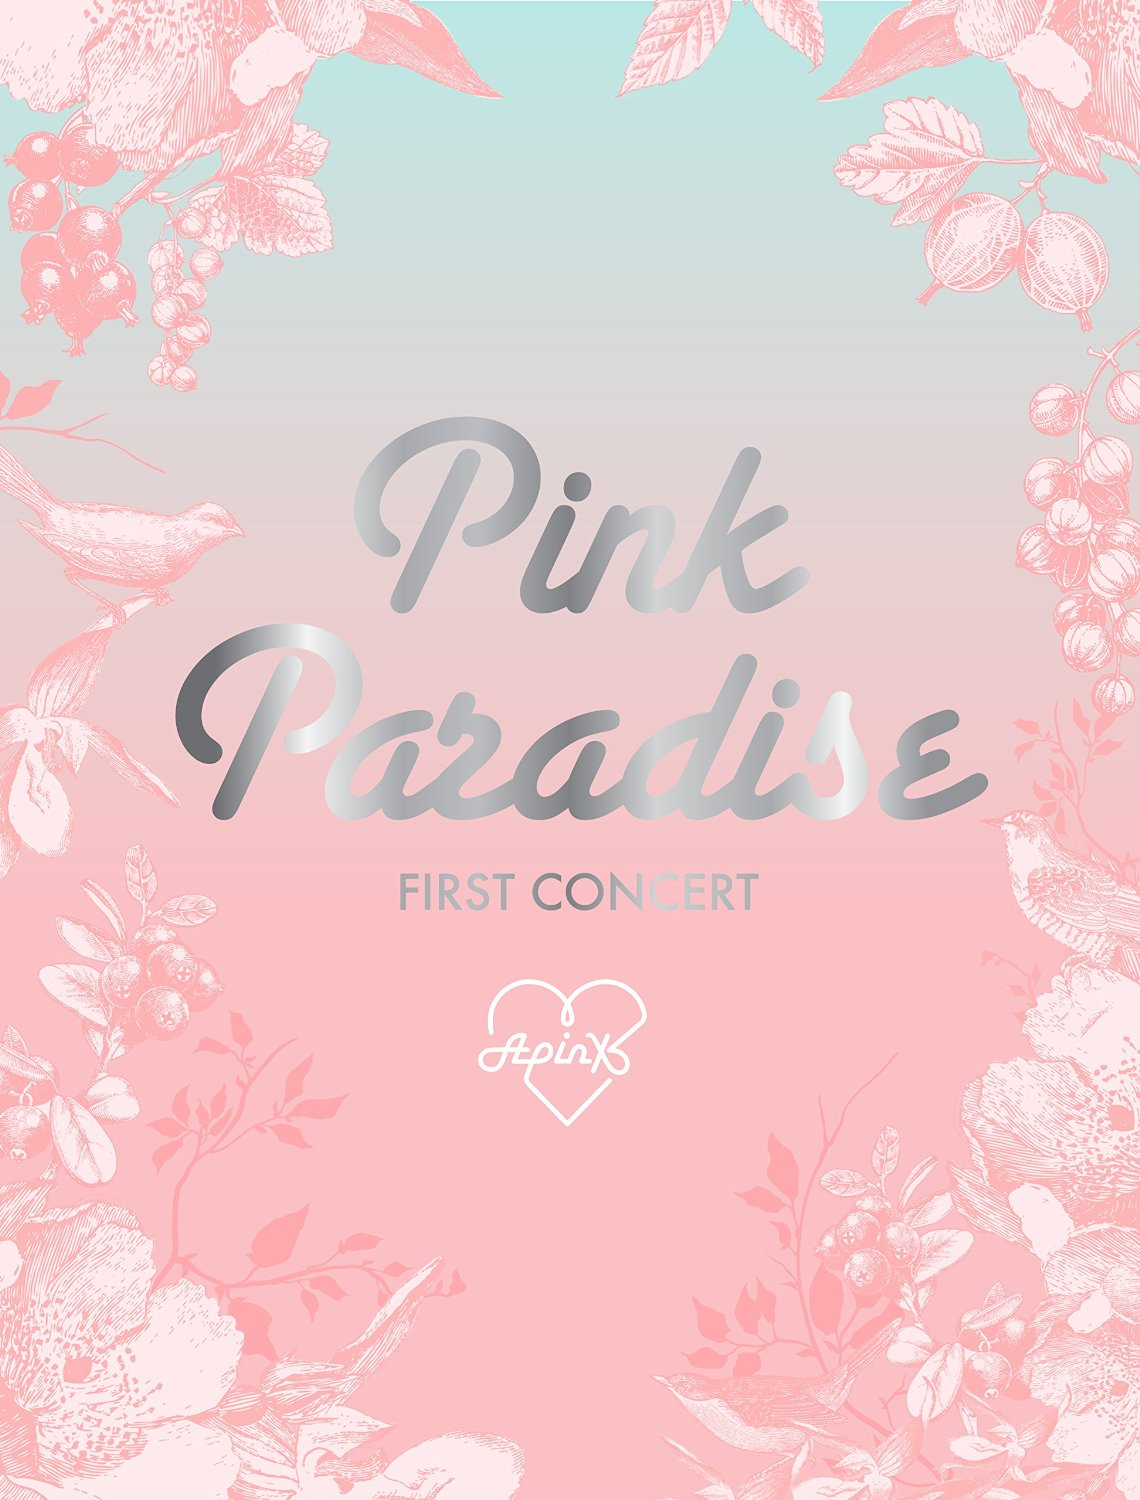 [DVD] APink – 1st Concert Live DVD [Pink Paradise] [ISO]